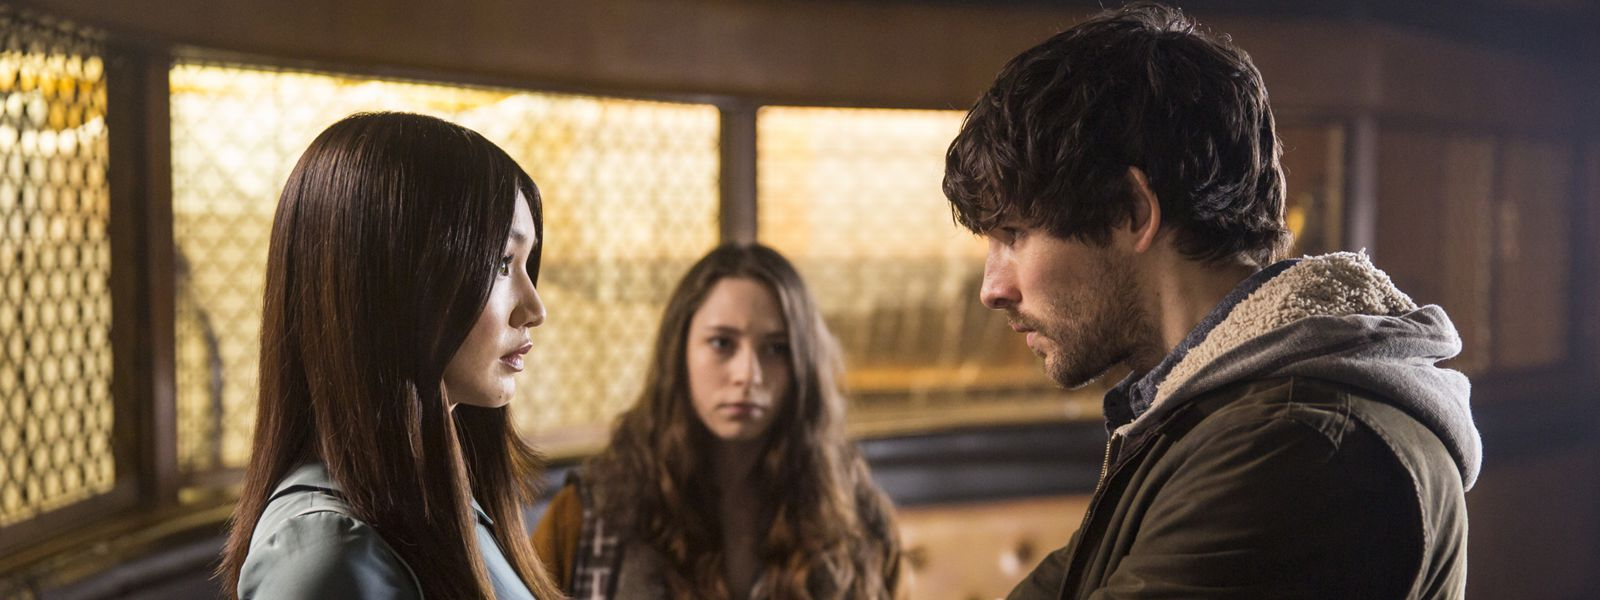 humans-episode-105-anita-chan-mattie-carless-leo-morgan-800×600